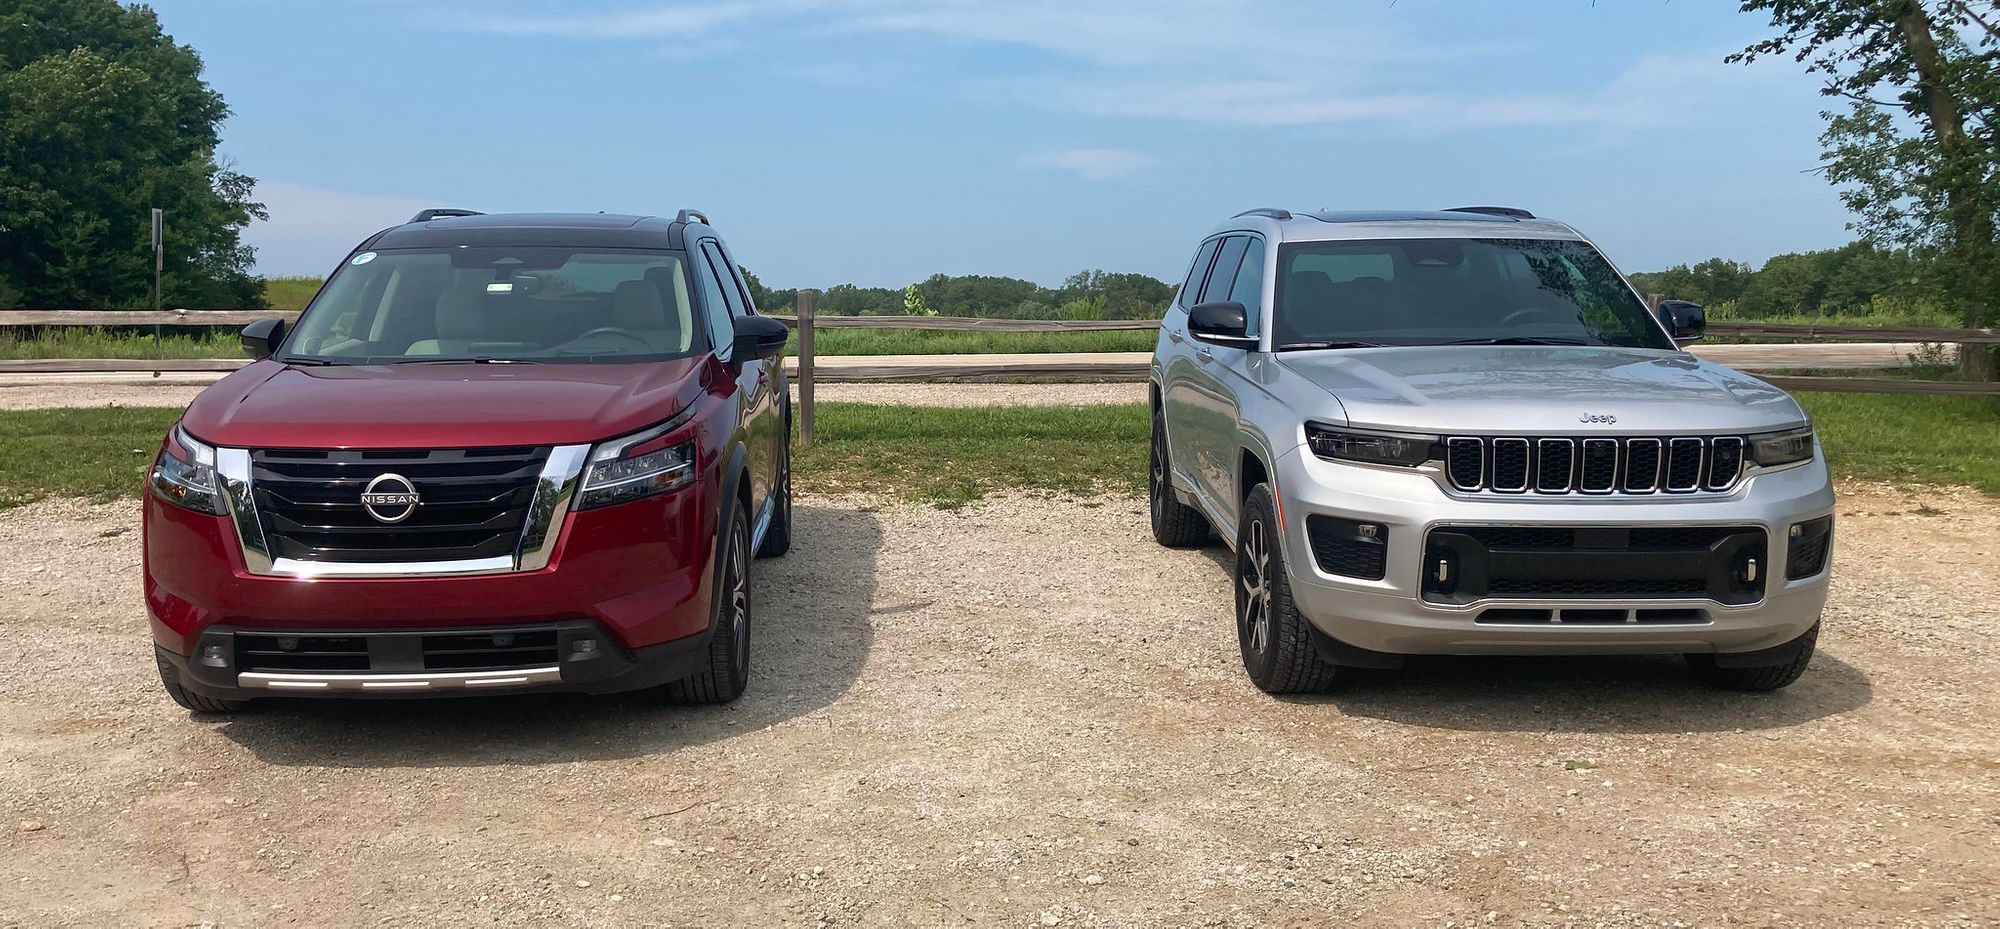 Sampling The Newest Three-Row Mid-Size SUVs: 2021 Jeep Grand Cherokee L and 2022 Nissan Pathfinder